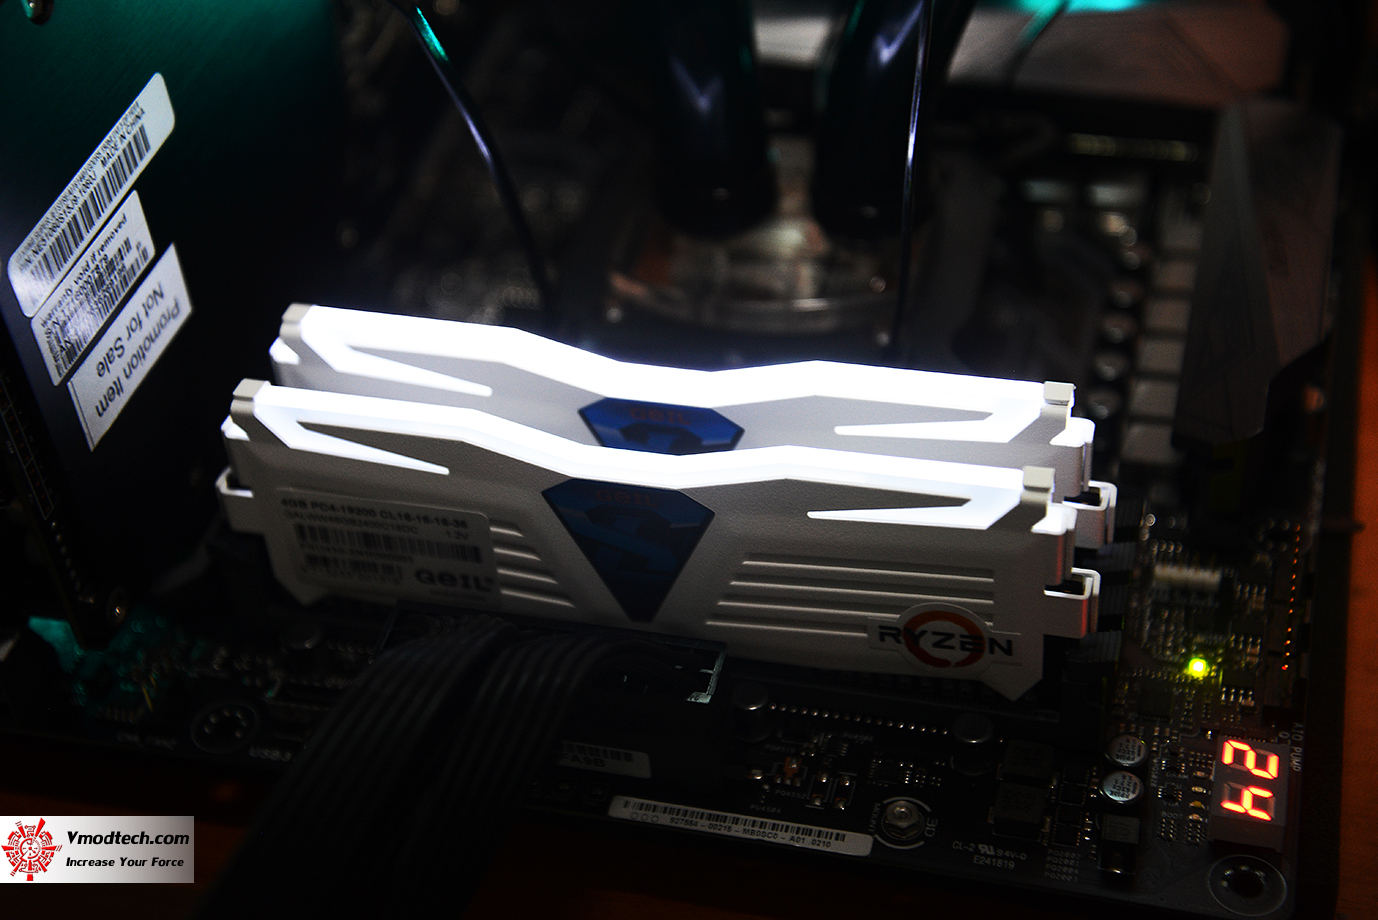 dsc 0393 GEIL DDR4 2400Mhz SUPER LUCE Series AMD Edition Review